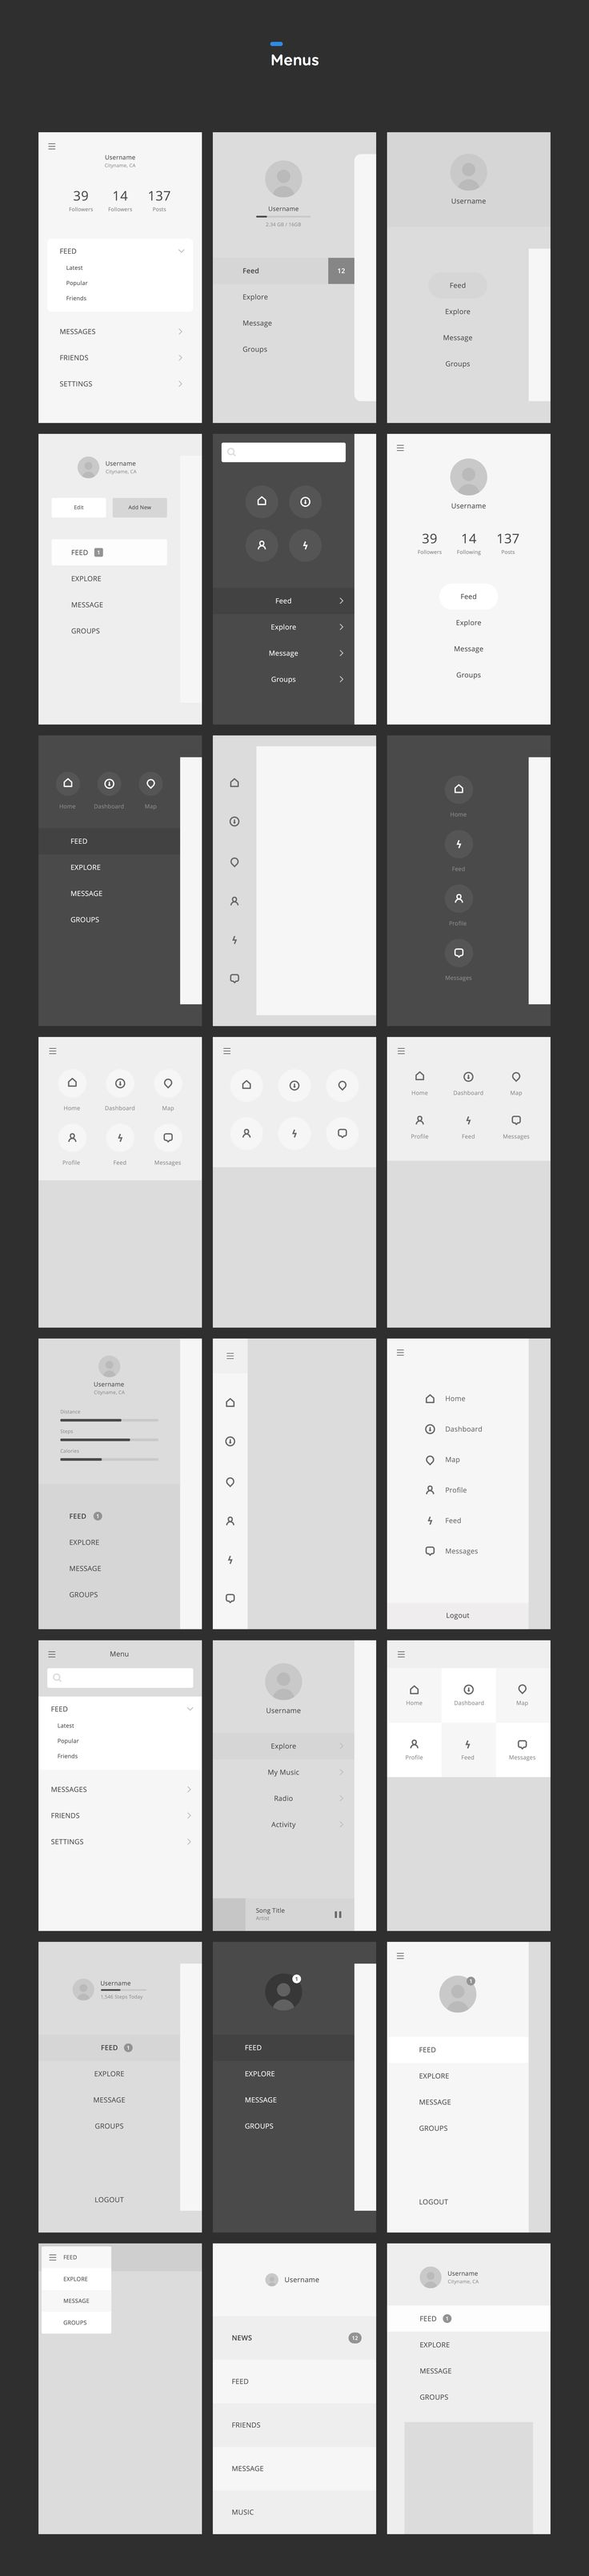 25 best ideas about wireframe on pinterest wireframe for Floor 6 reloaded menu